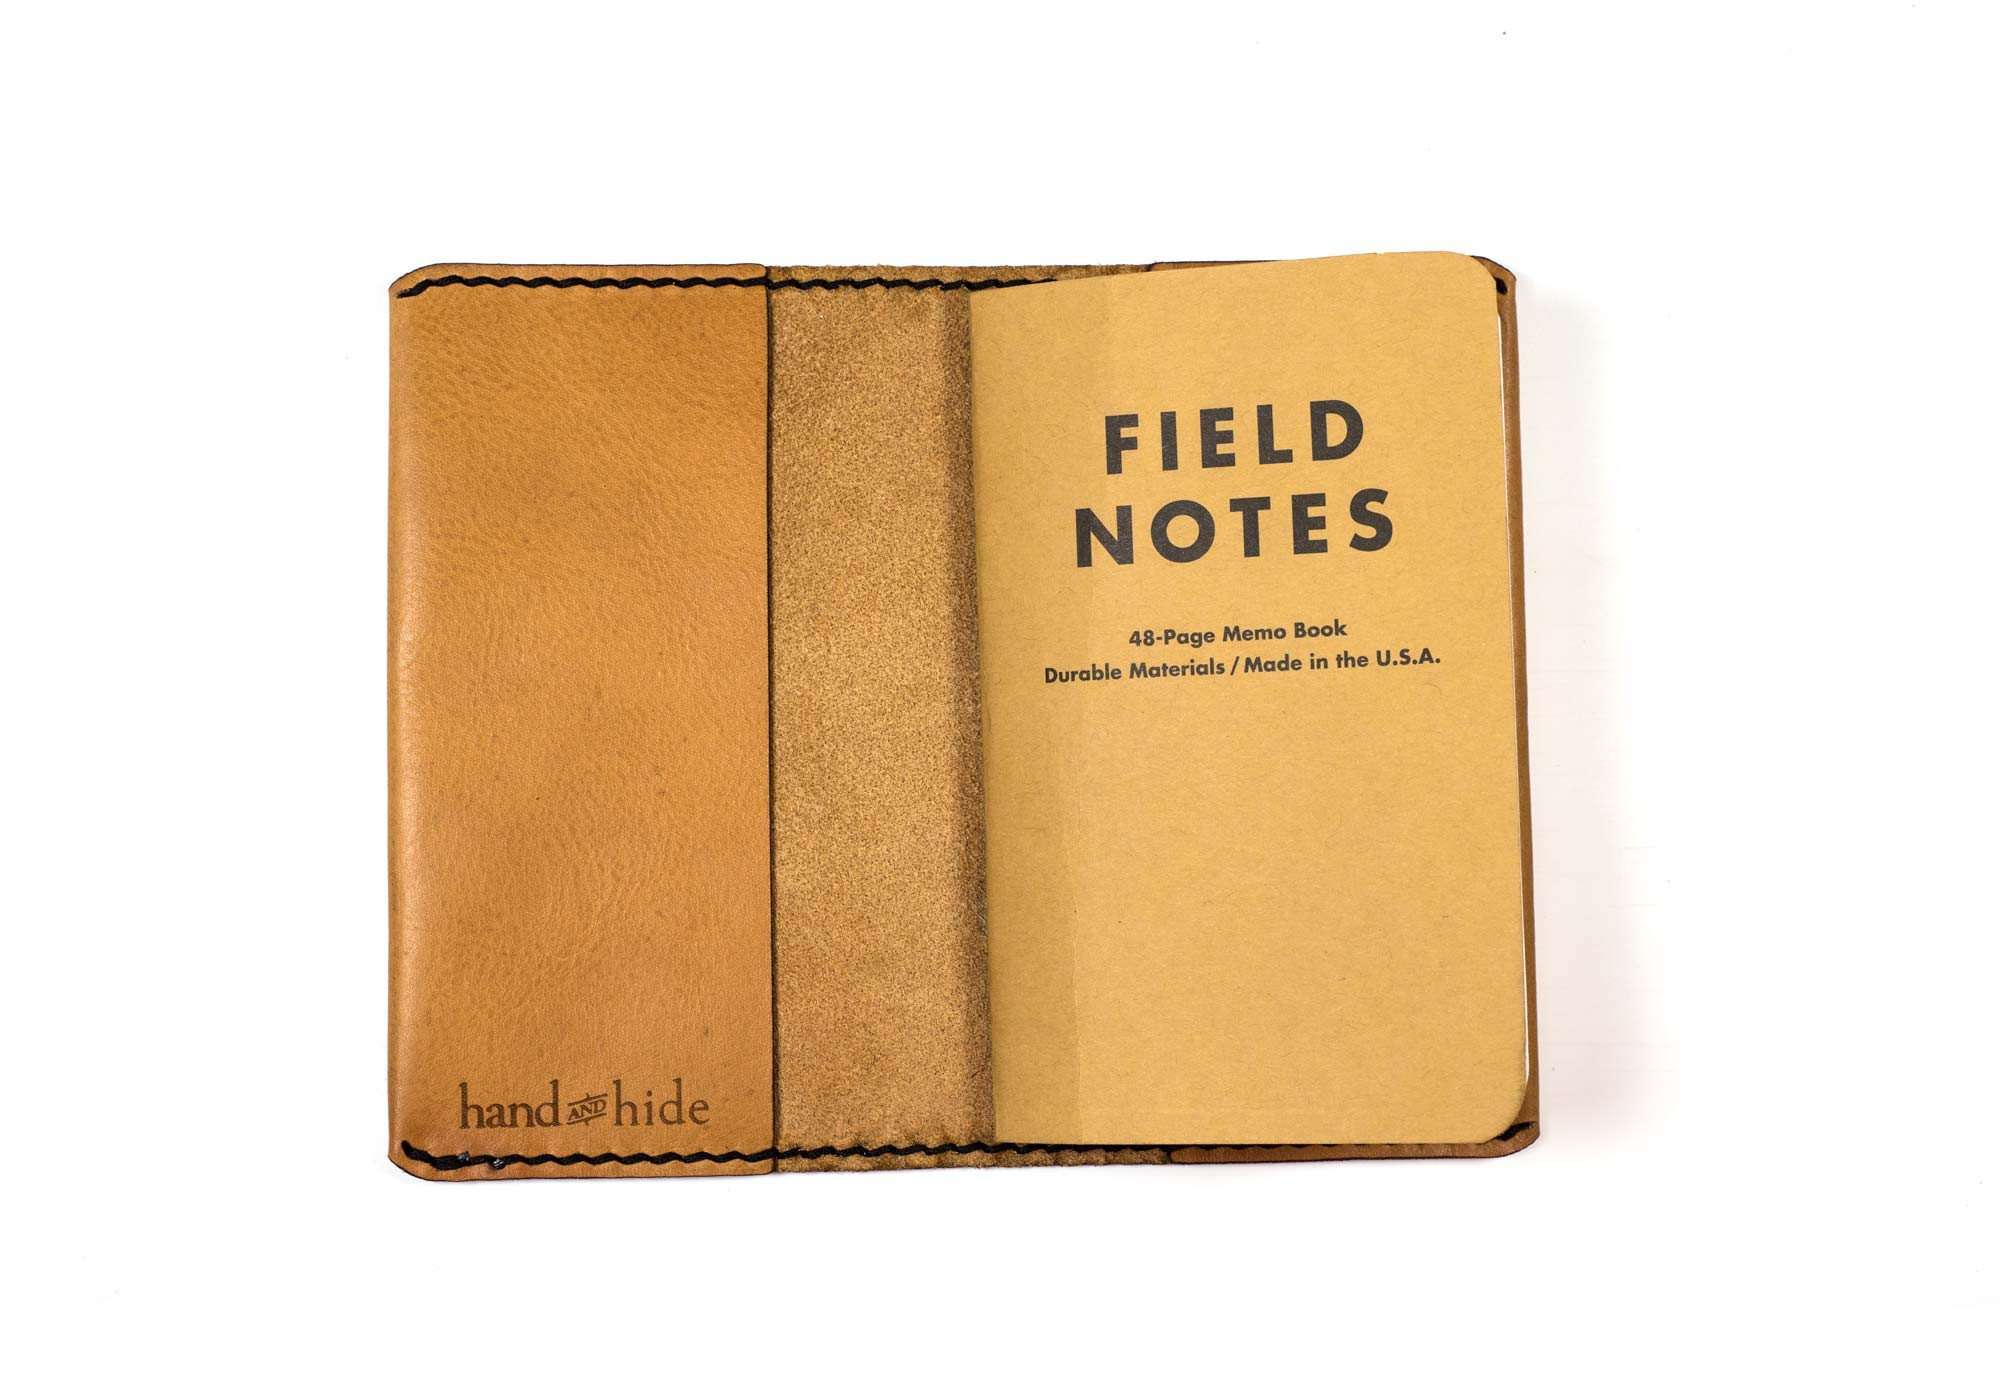 Leather Journal Cover for Field Notes (original size) - Hand and Hide LLC  - 1